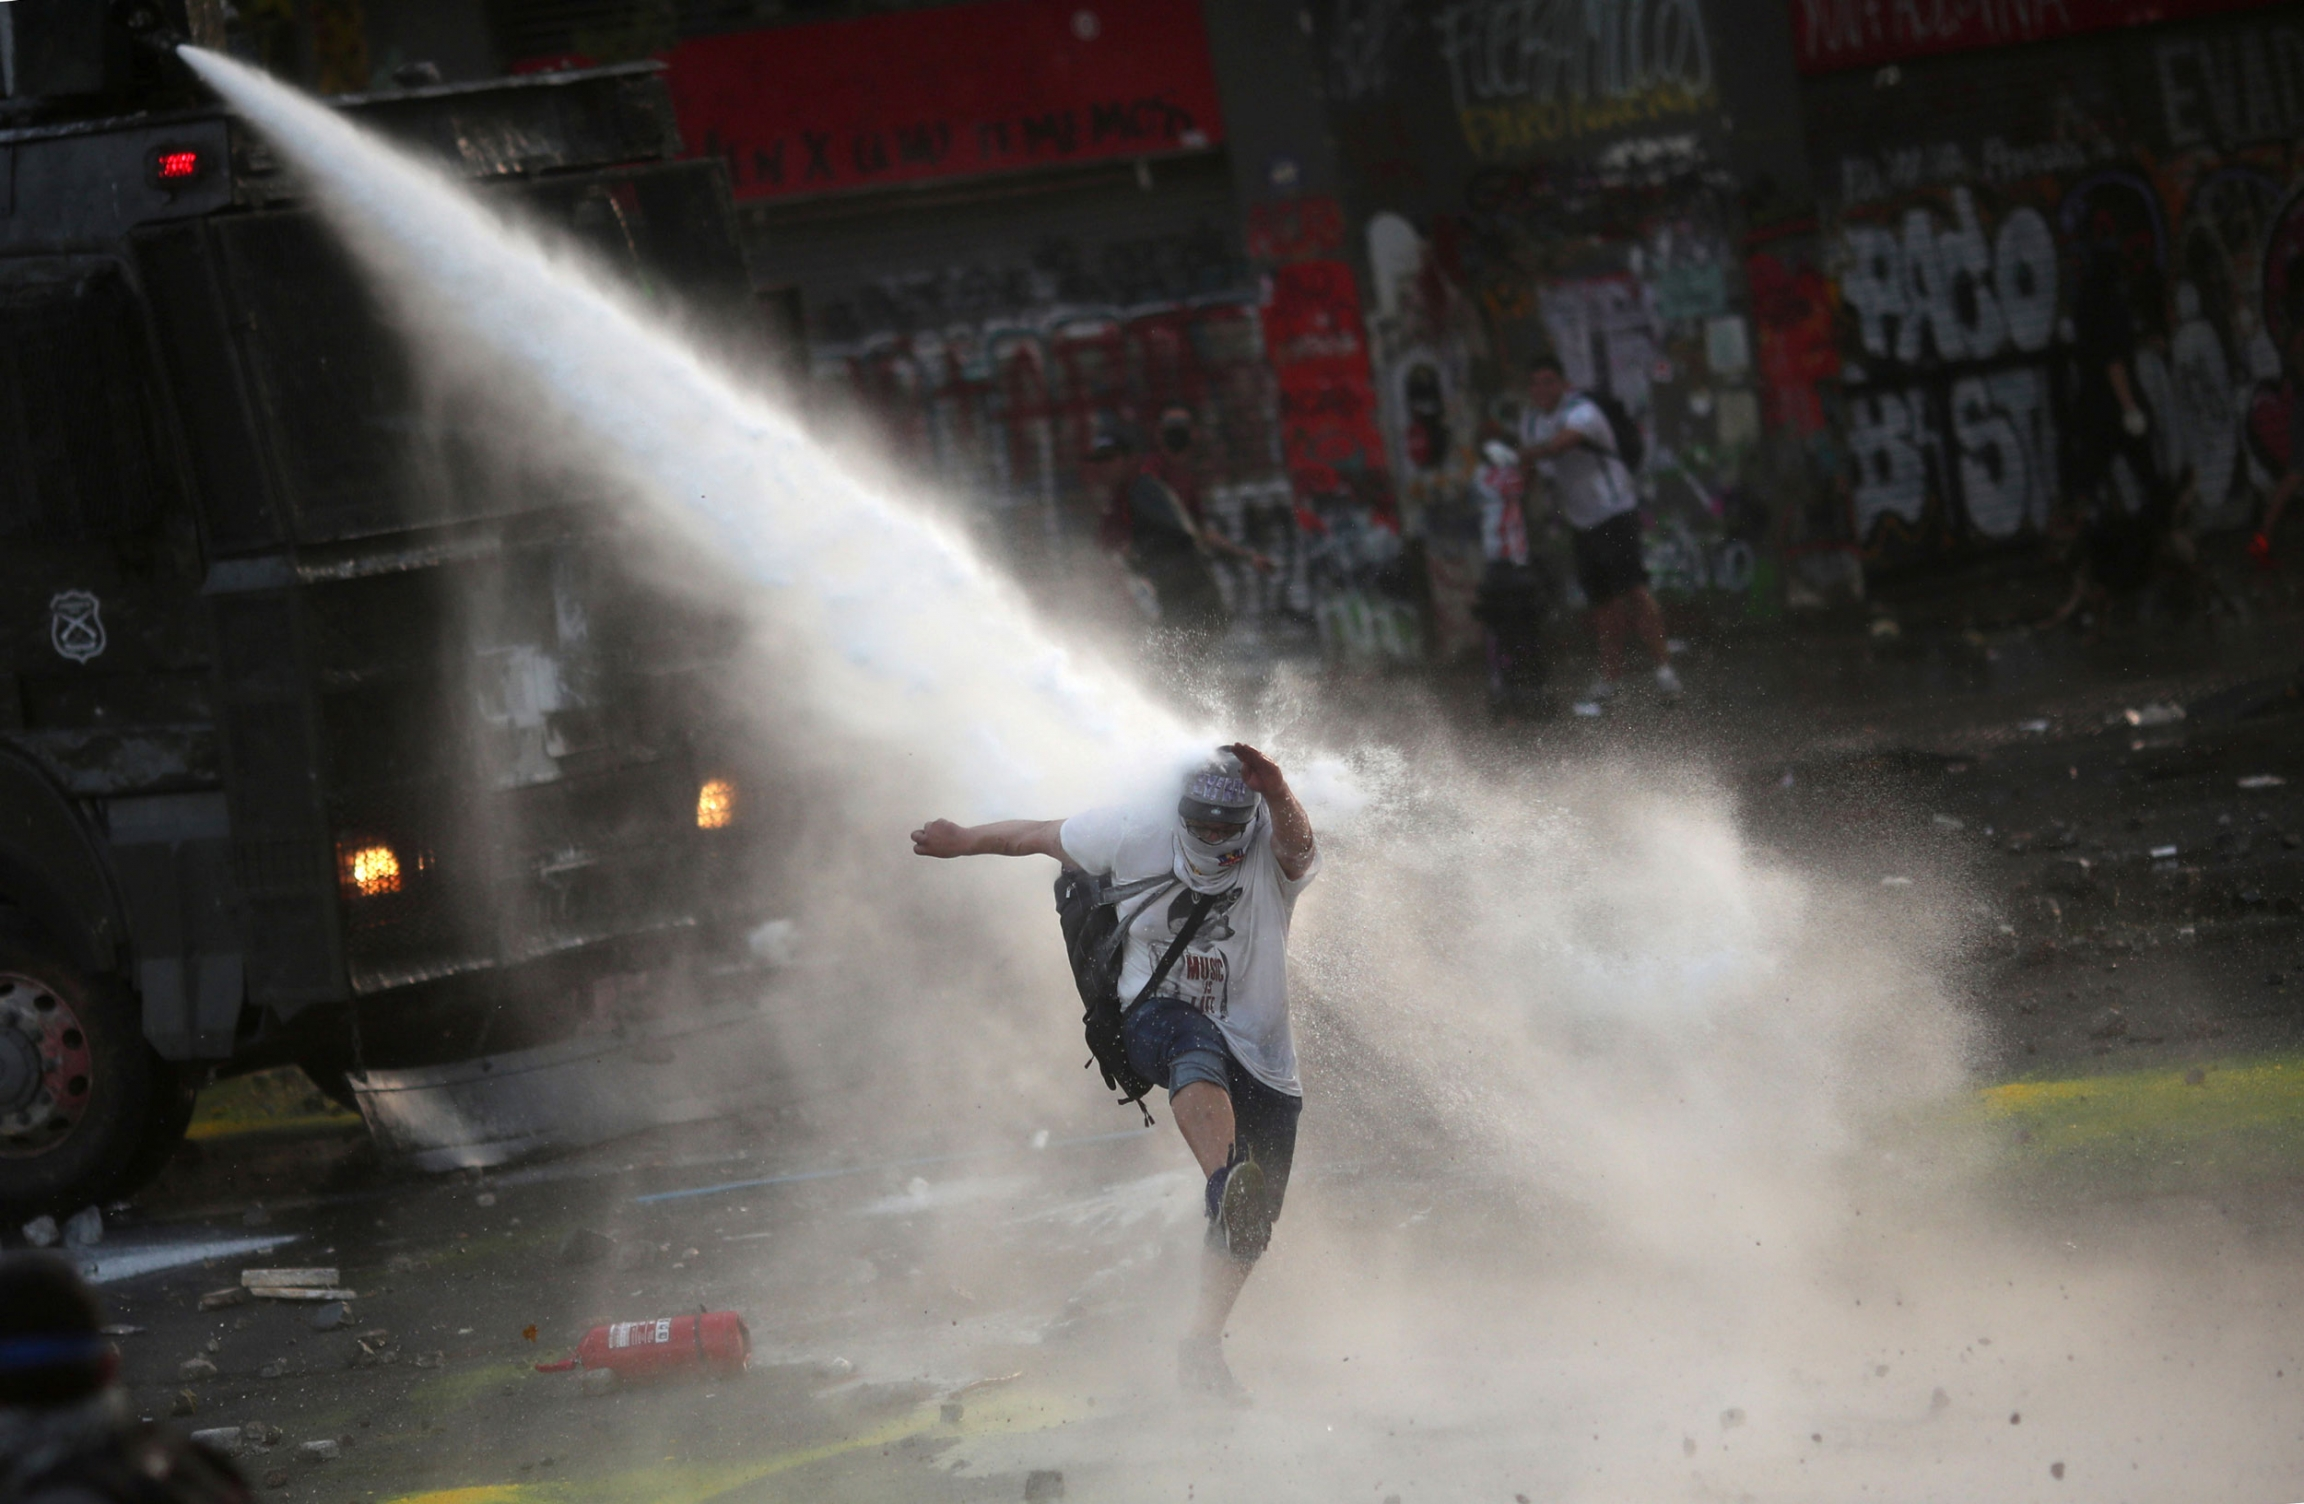 A person is shown being sprayed by a water cannon from above.